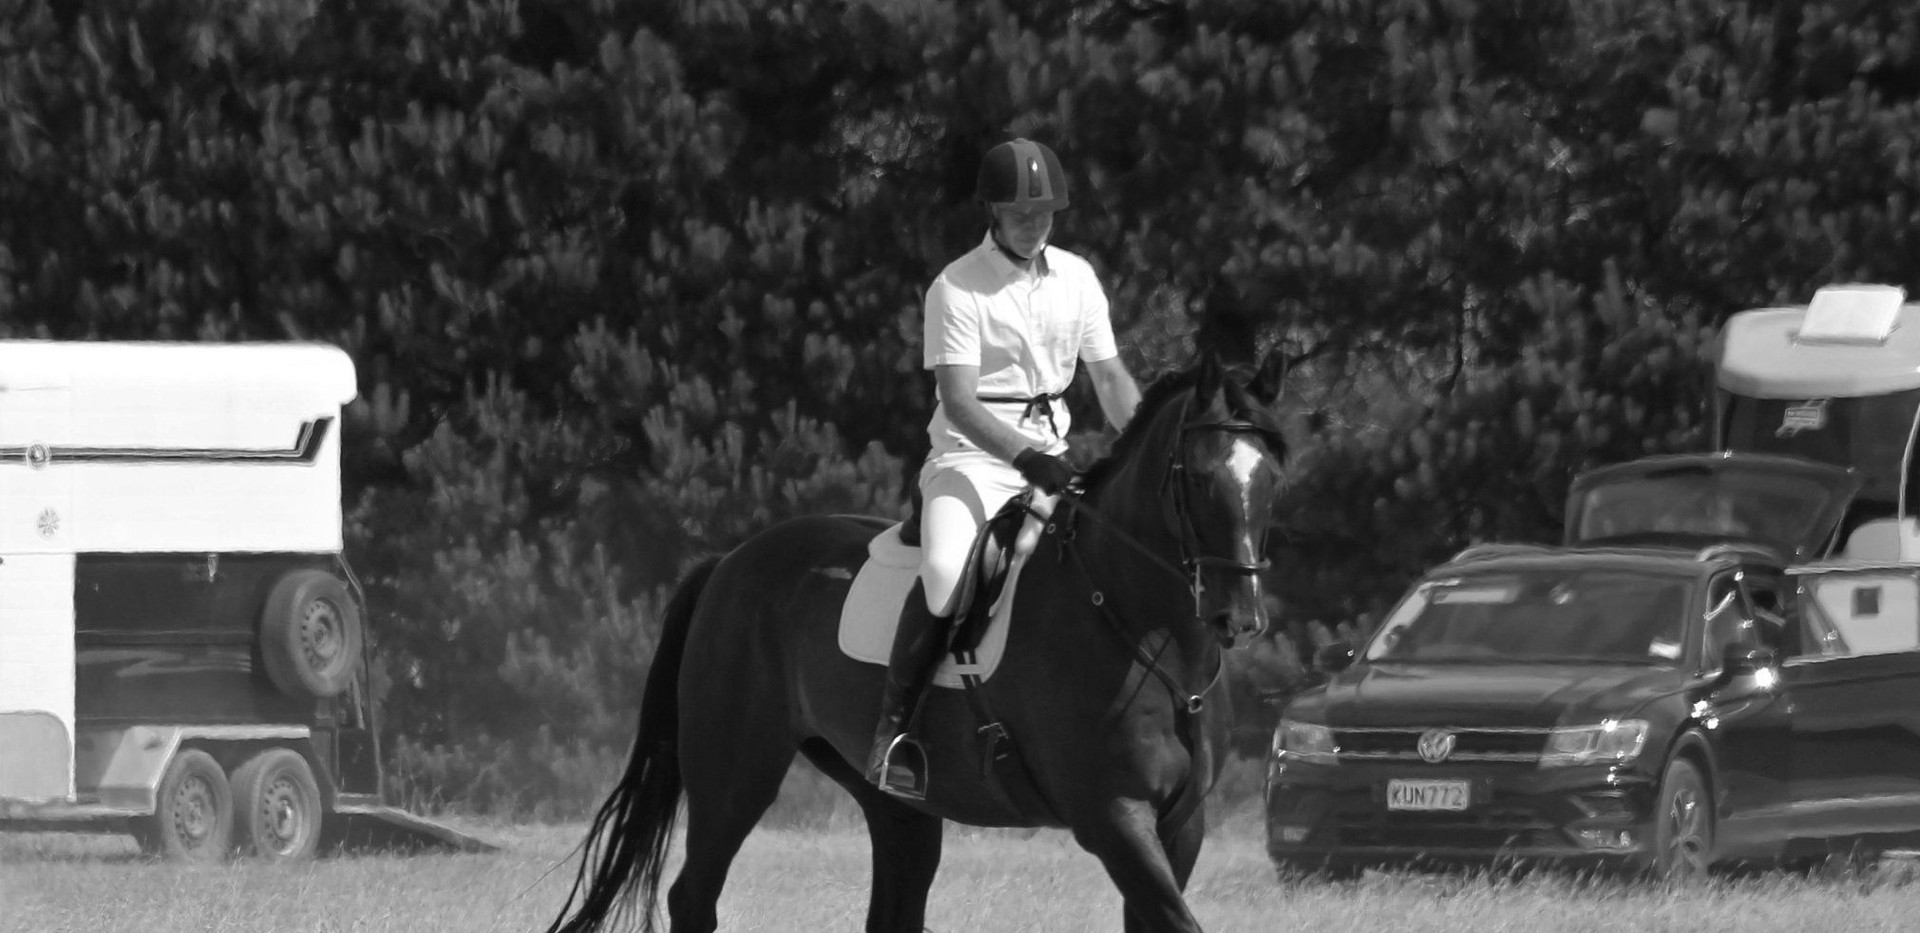 Van - first dressage competition